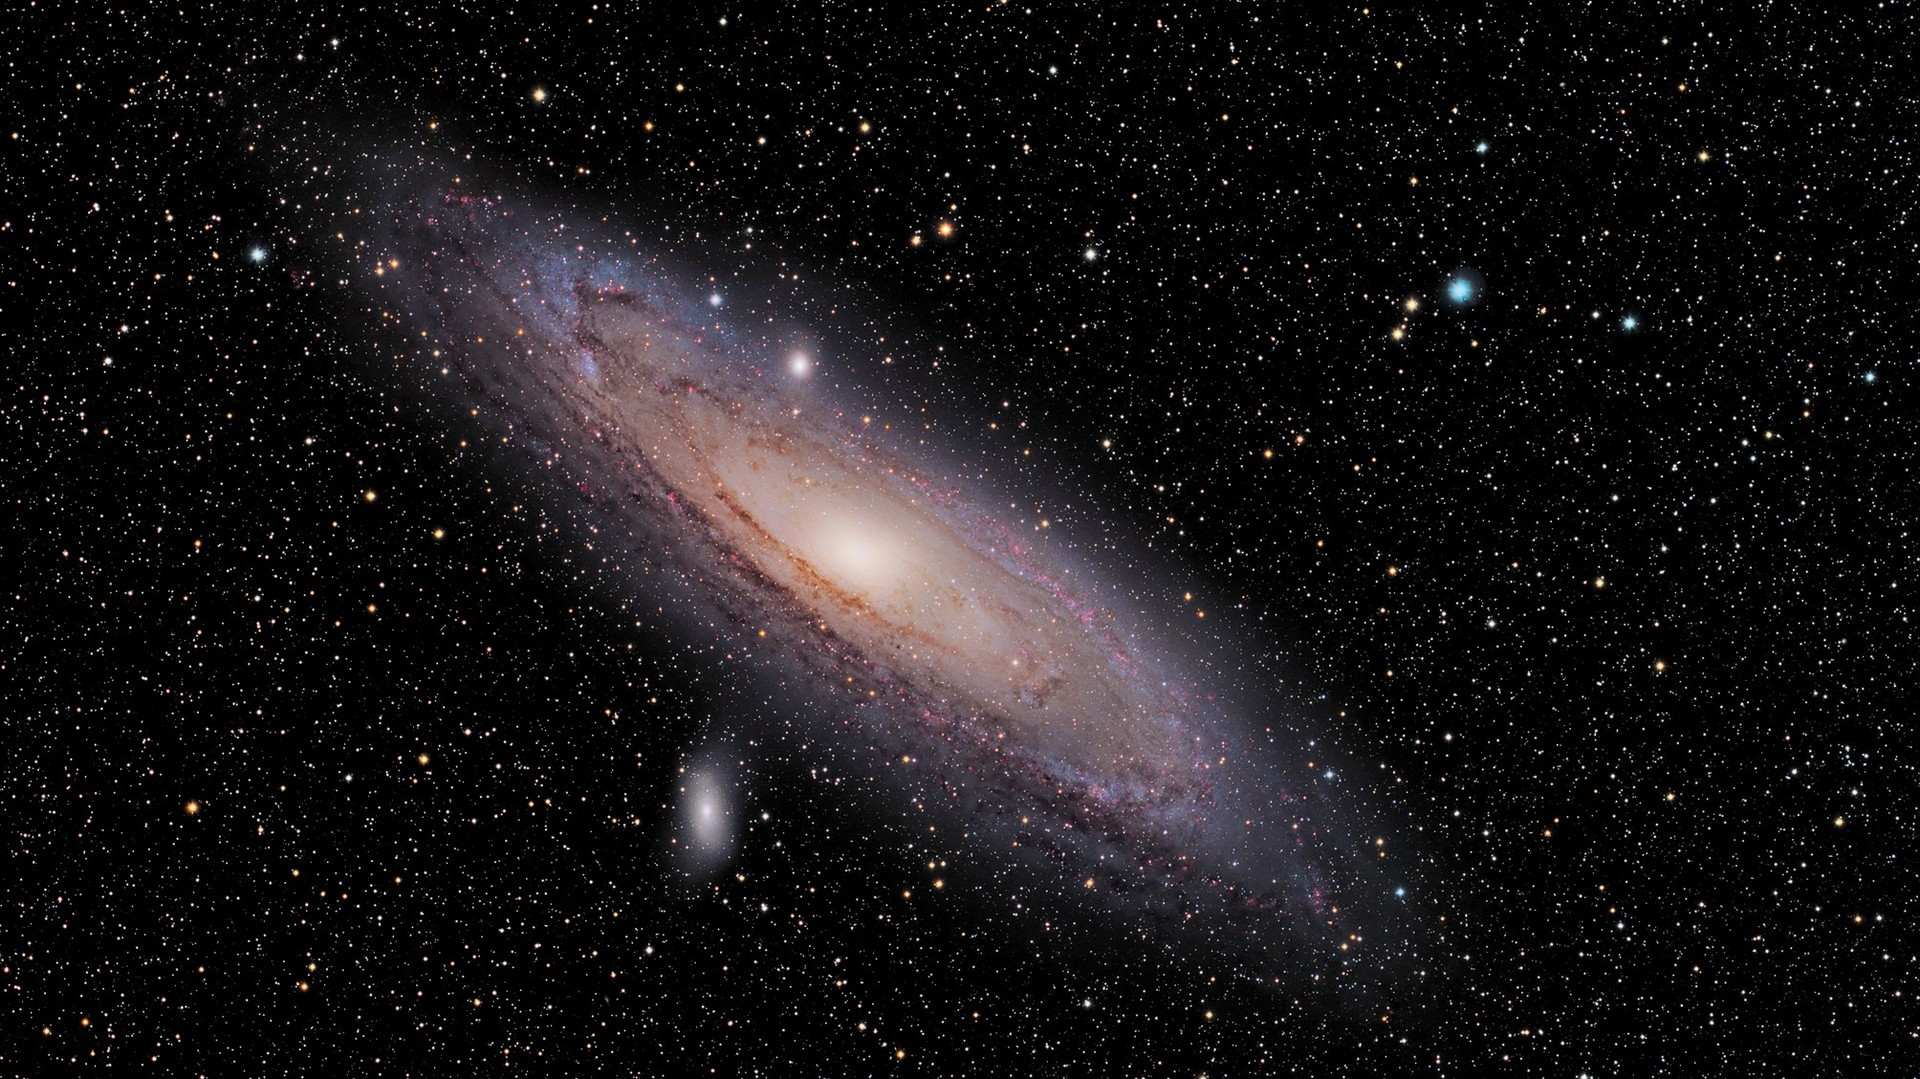 Nasa andromeda galaxy wallpaper wallpapersafari - Nasa space wallpaper ...